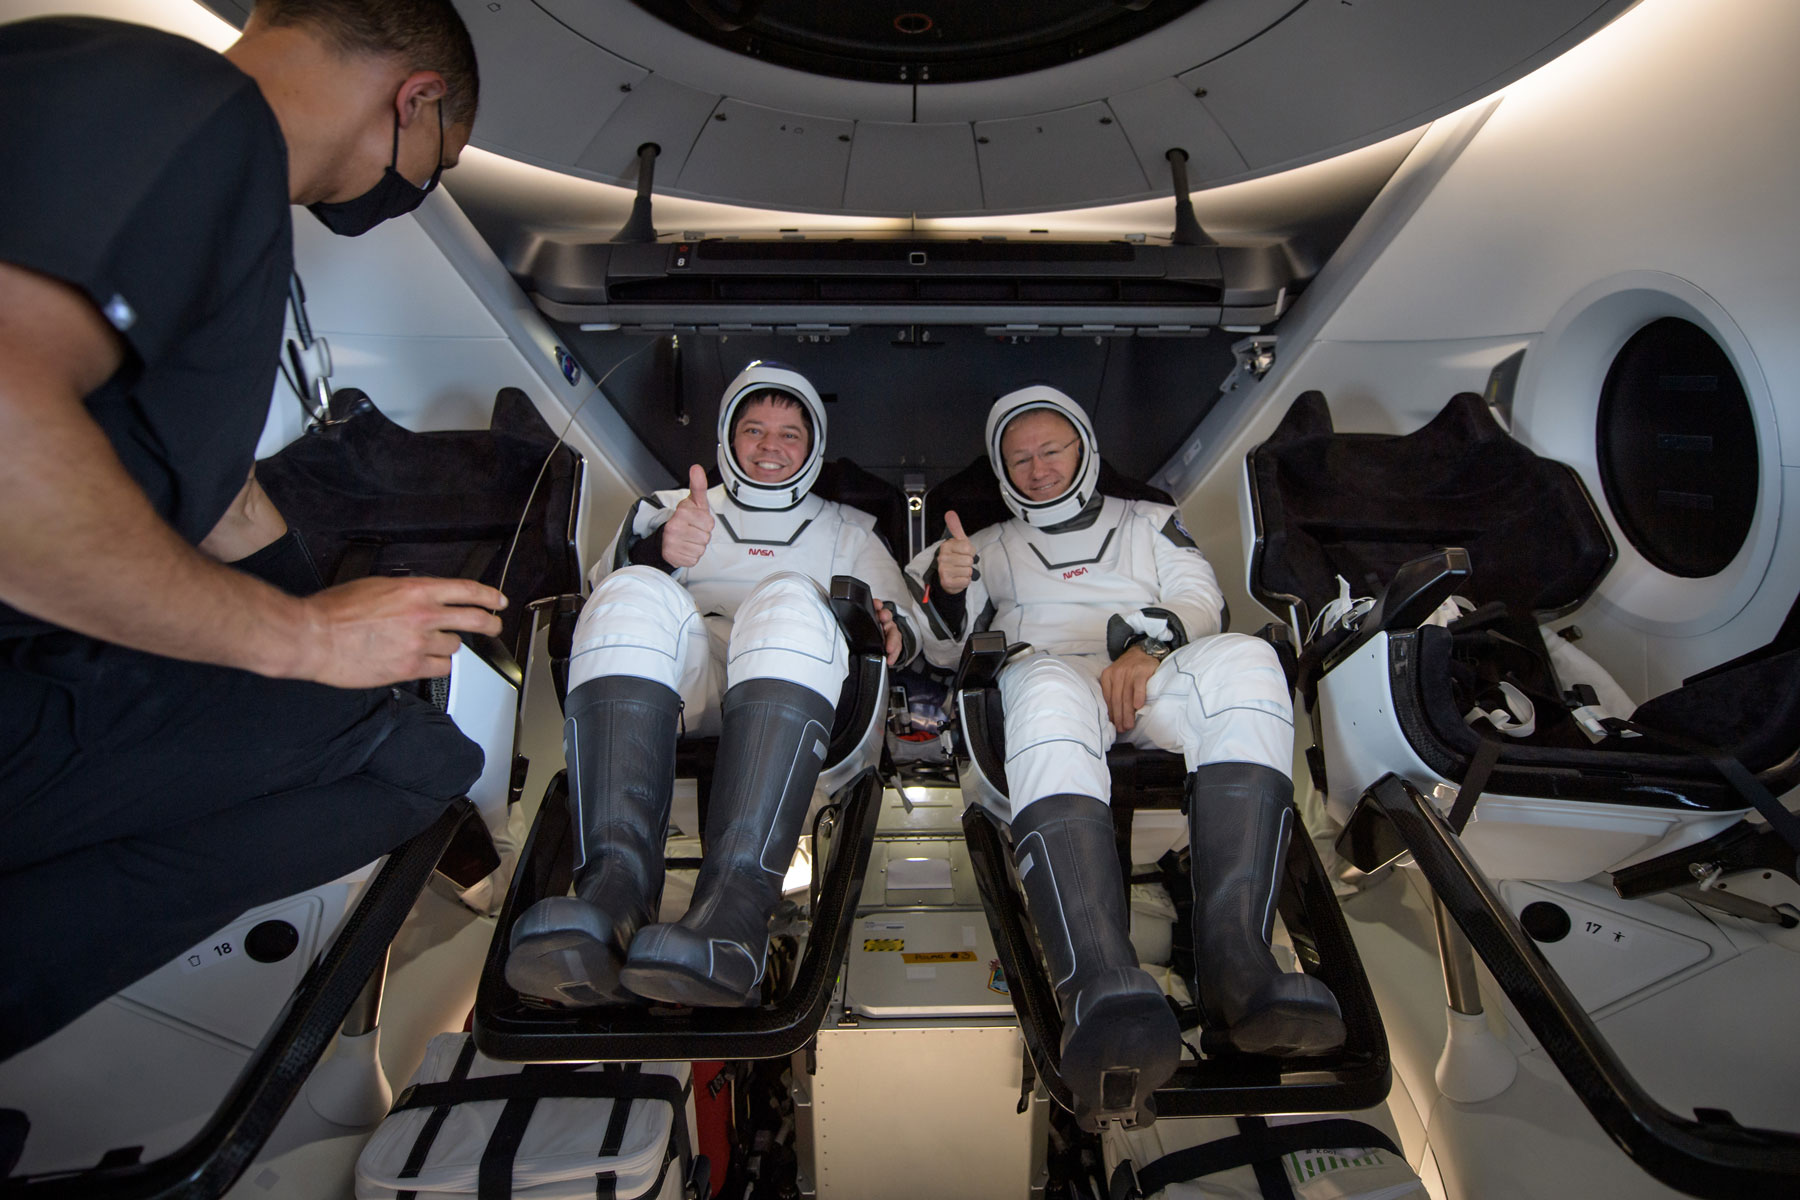 astronauts Bob Behnken and Doug Hurley seated inside SpaceX's Crew Dragon spacecraft